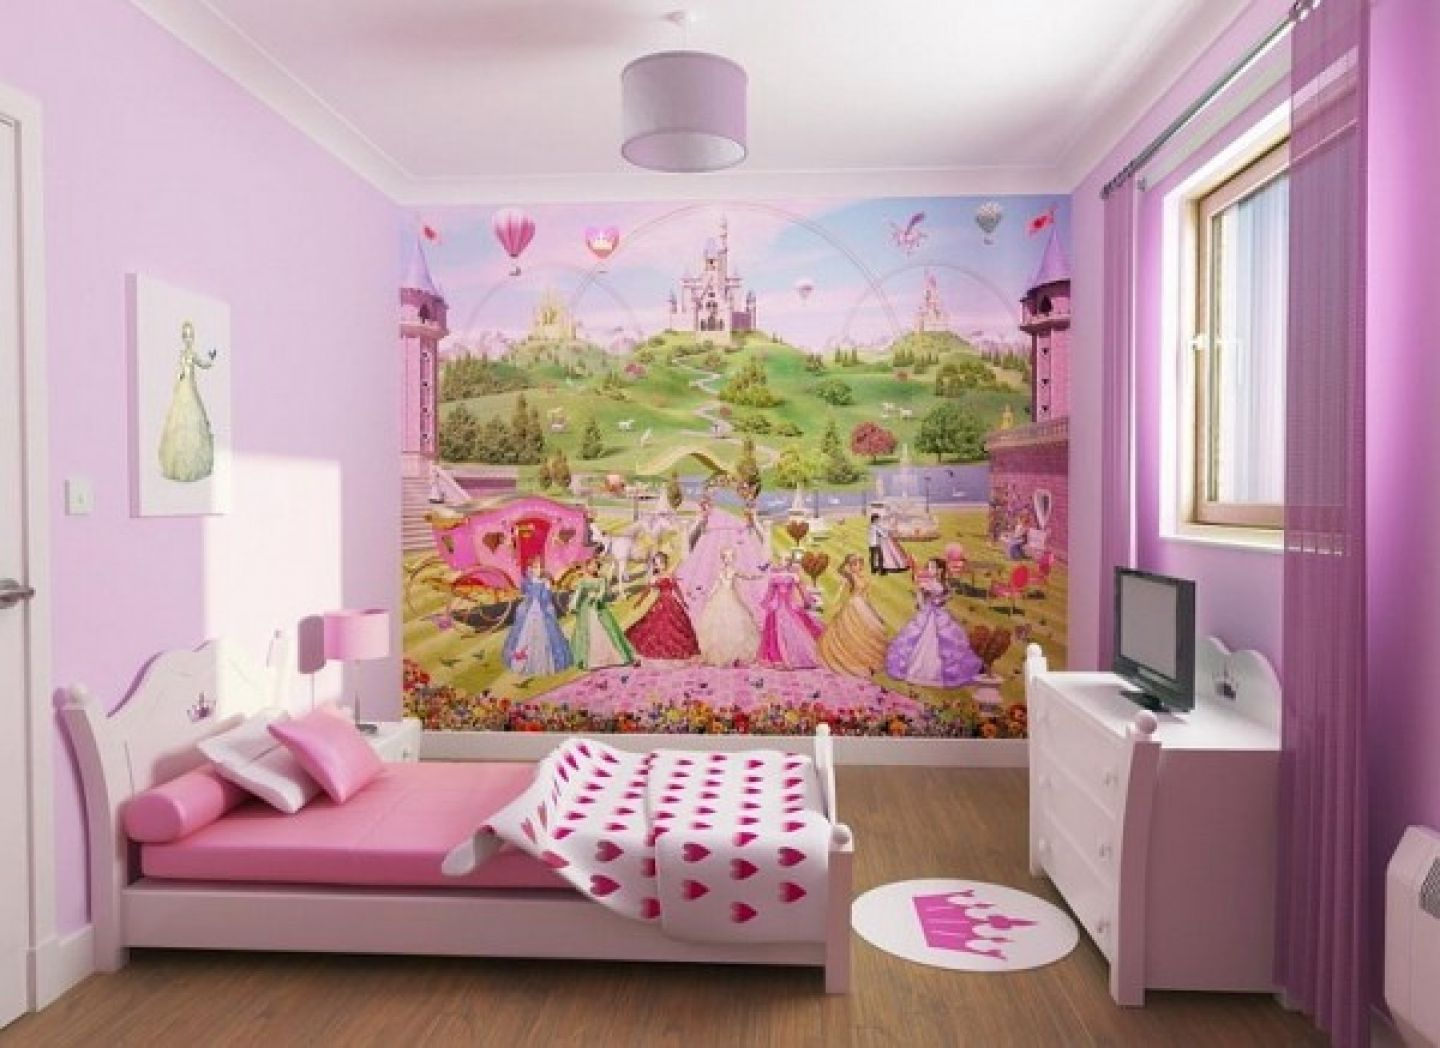 bedroom themes - Girls Bedroom Decorating Ideas